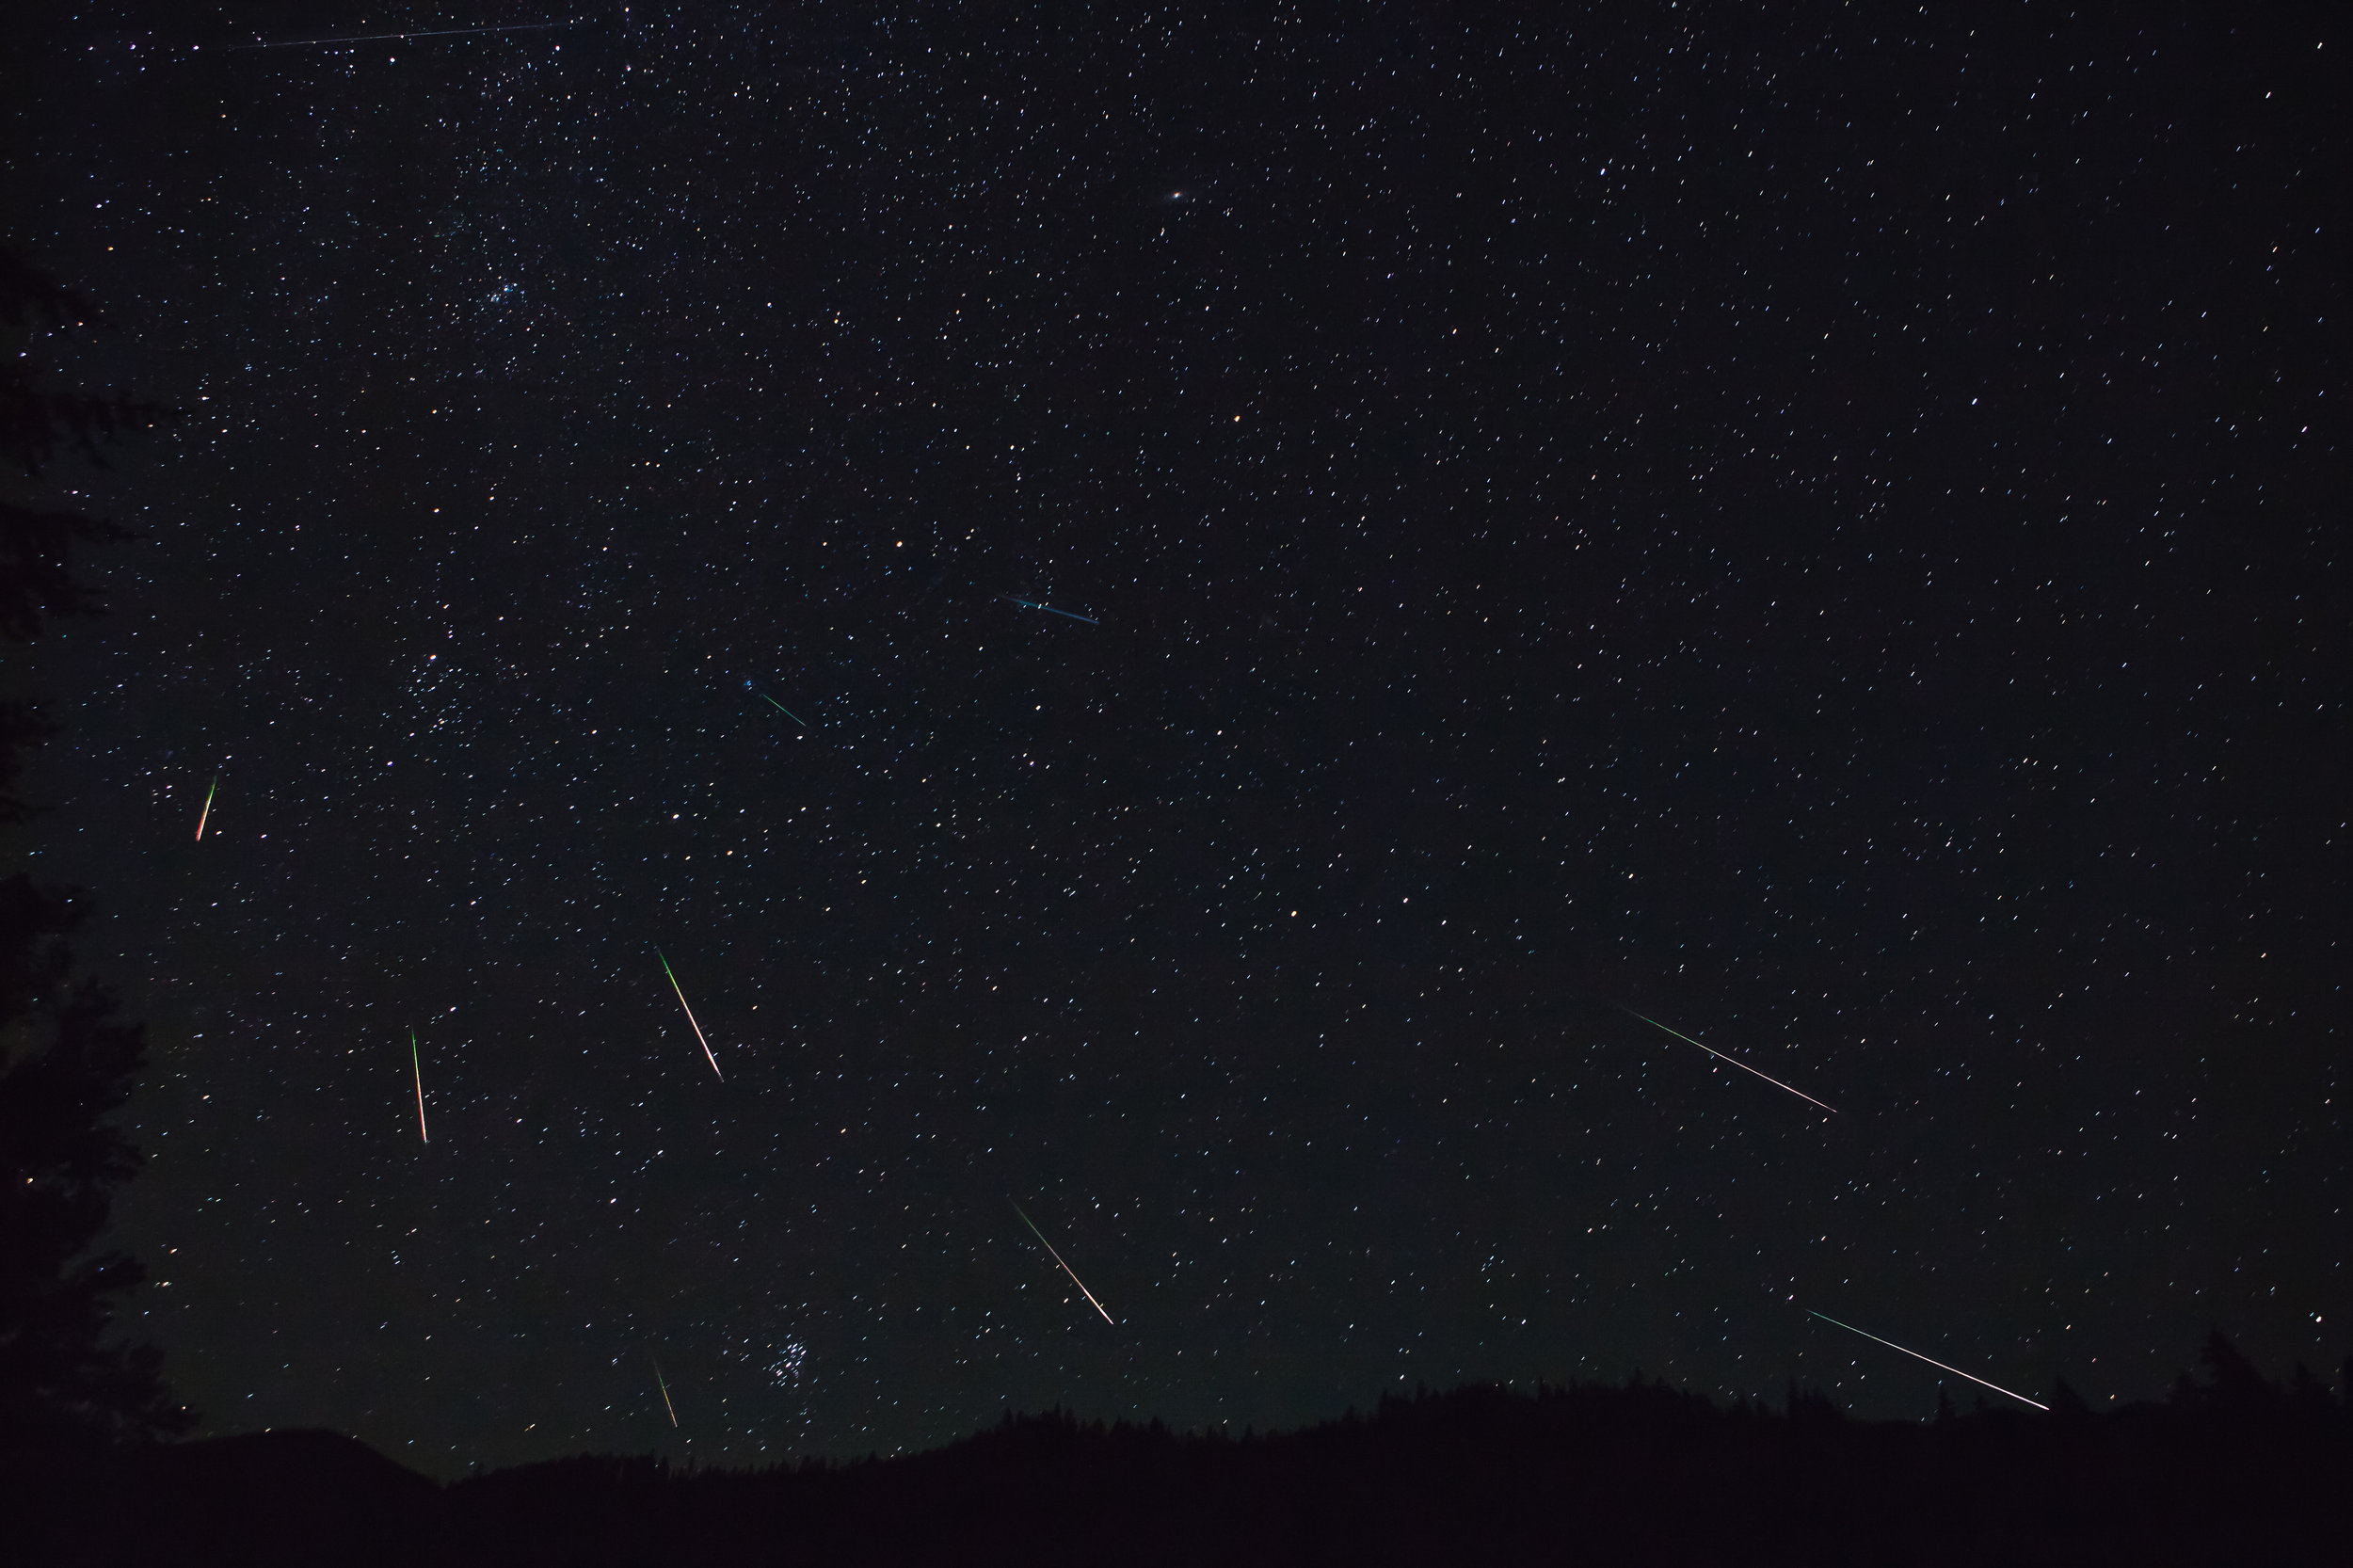 Perseid Meteor Shower.Okanogan-Wenatchee National Forest, Washington.    This picture is a photo composition of multiple images captured between Thursday, August 11 from 11:57pm - Friday, 12th 1:28am. The images have been oriented to reflect the initial composition of star alignment.